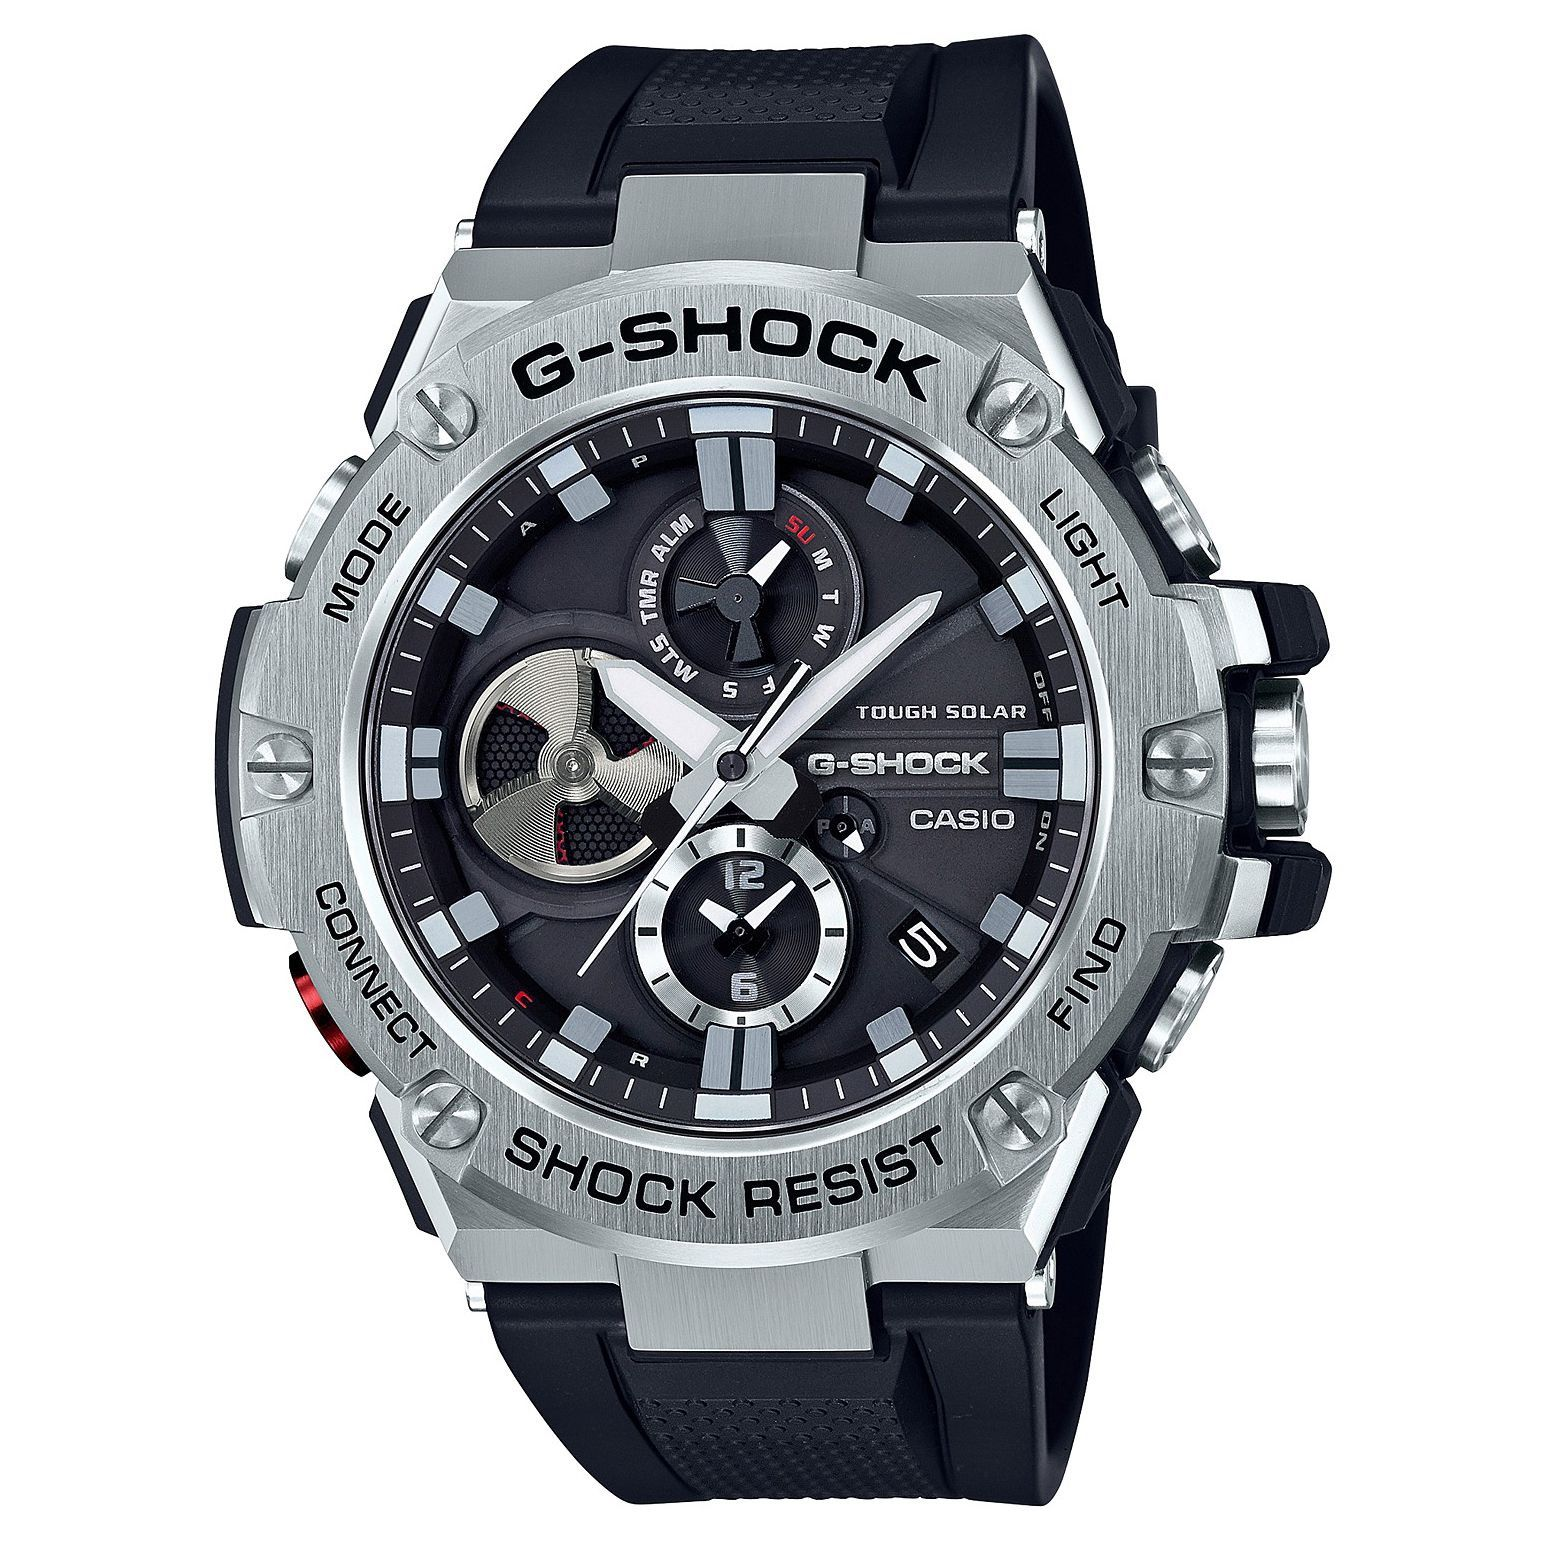 11 Best G-Shock Watches to Buy in 2019 - Cool Casio G-Shock Watches fdd60d26cf